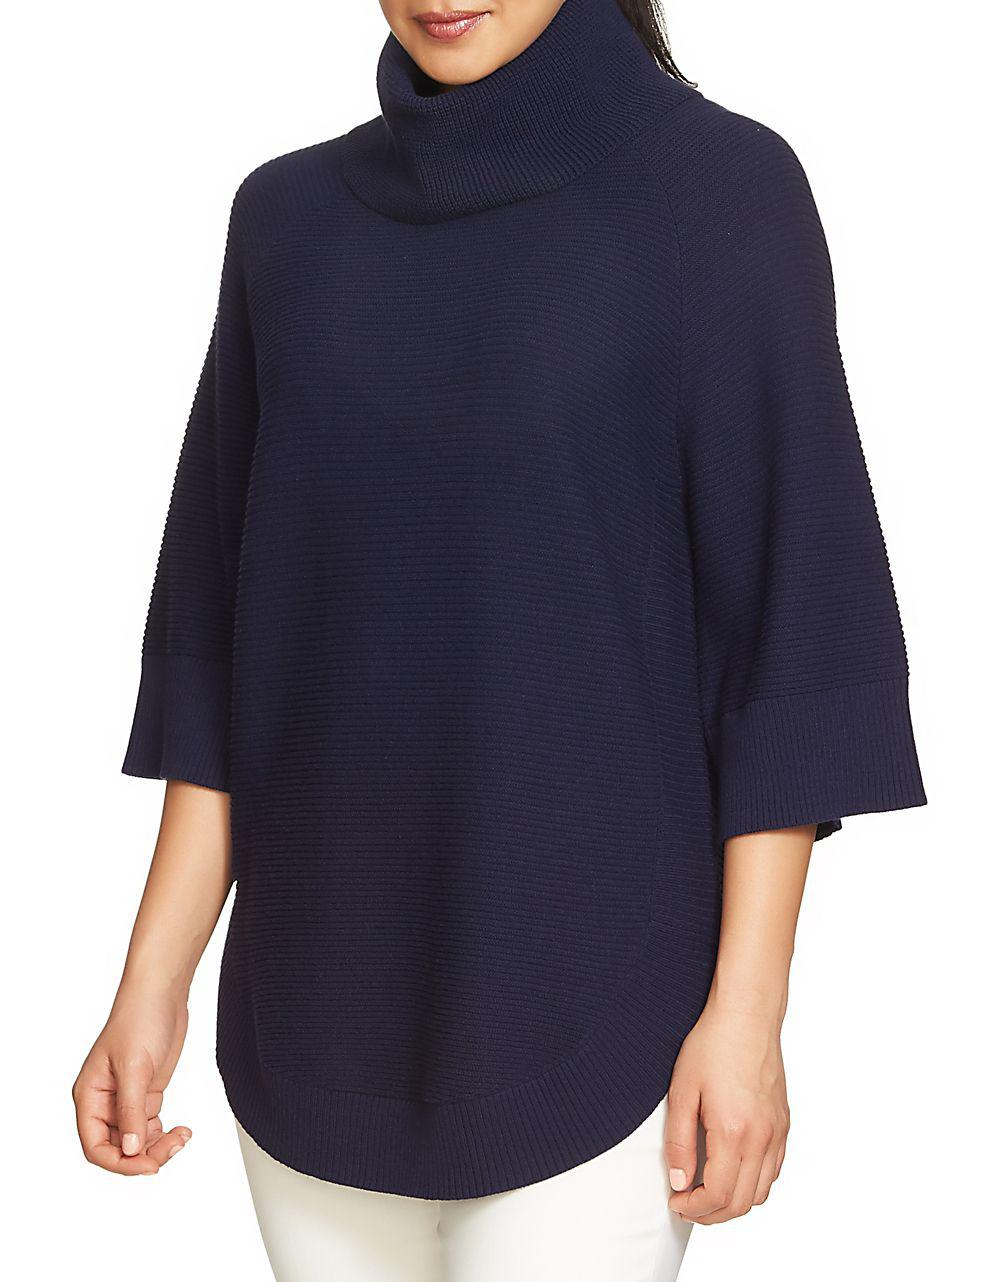 Chaus Dolman Sleeve Cowl Neck Sweater in Blue   Lyst